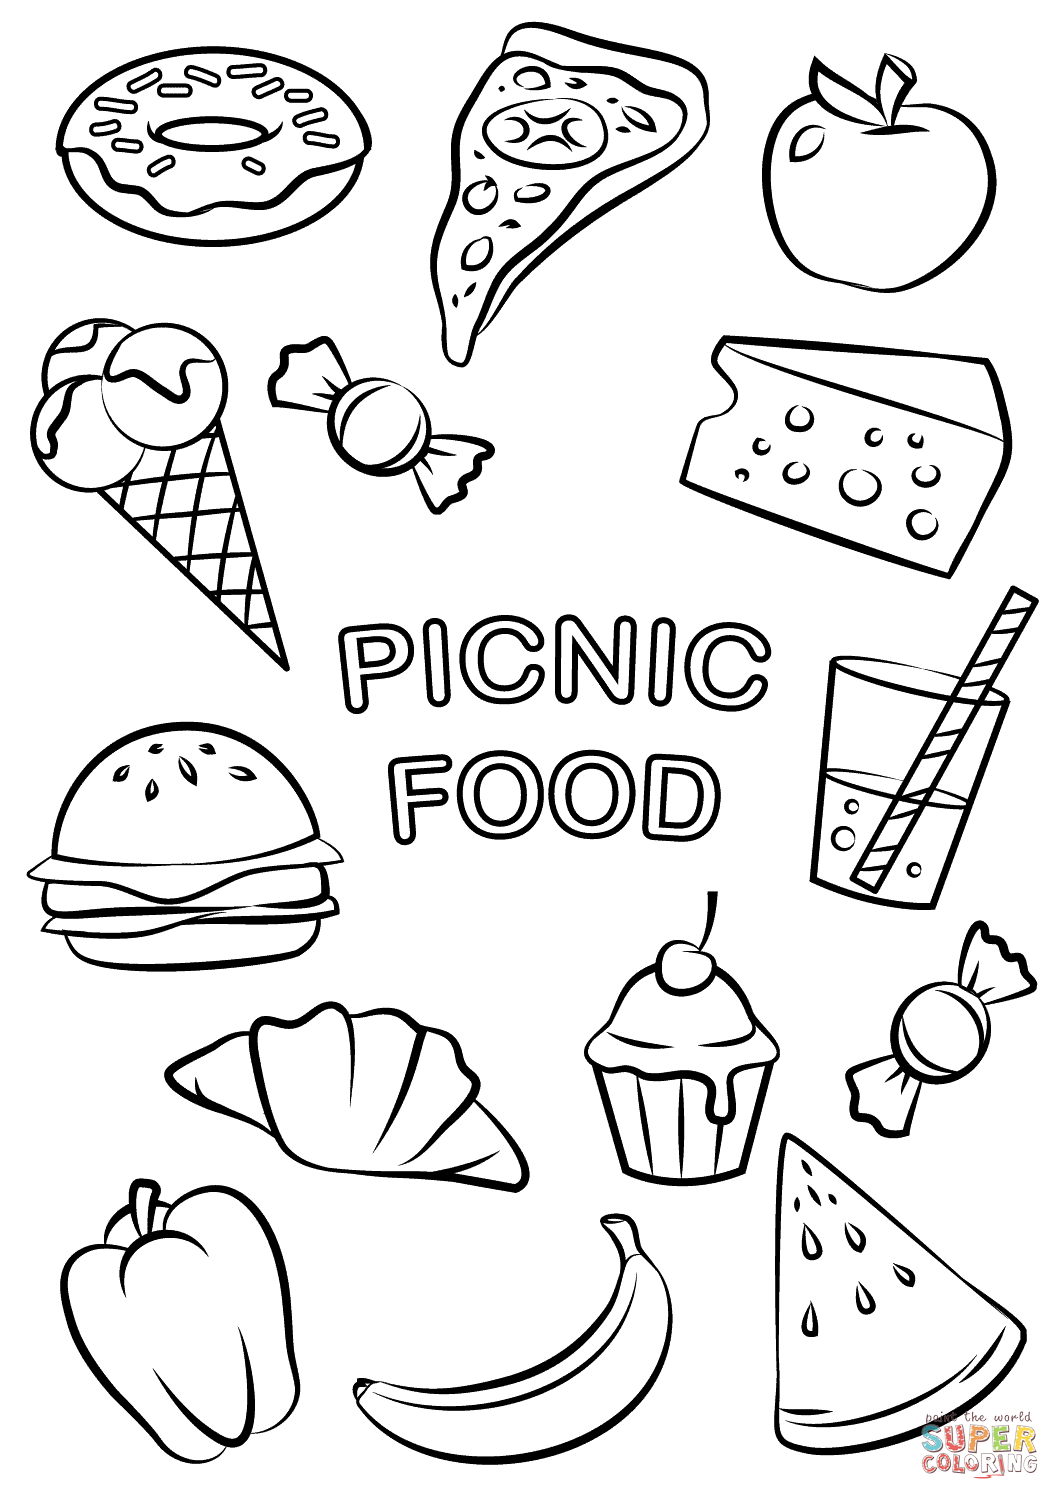 Food With Faces Coloring Pages At Getcolorings